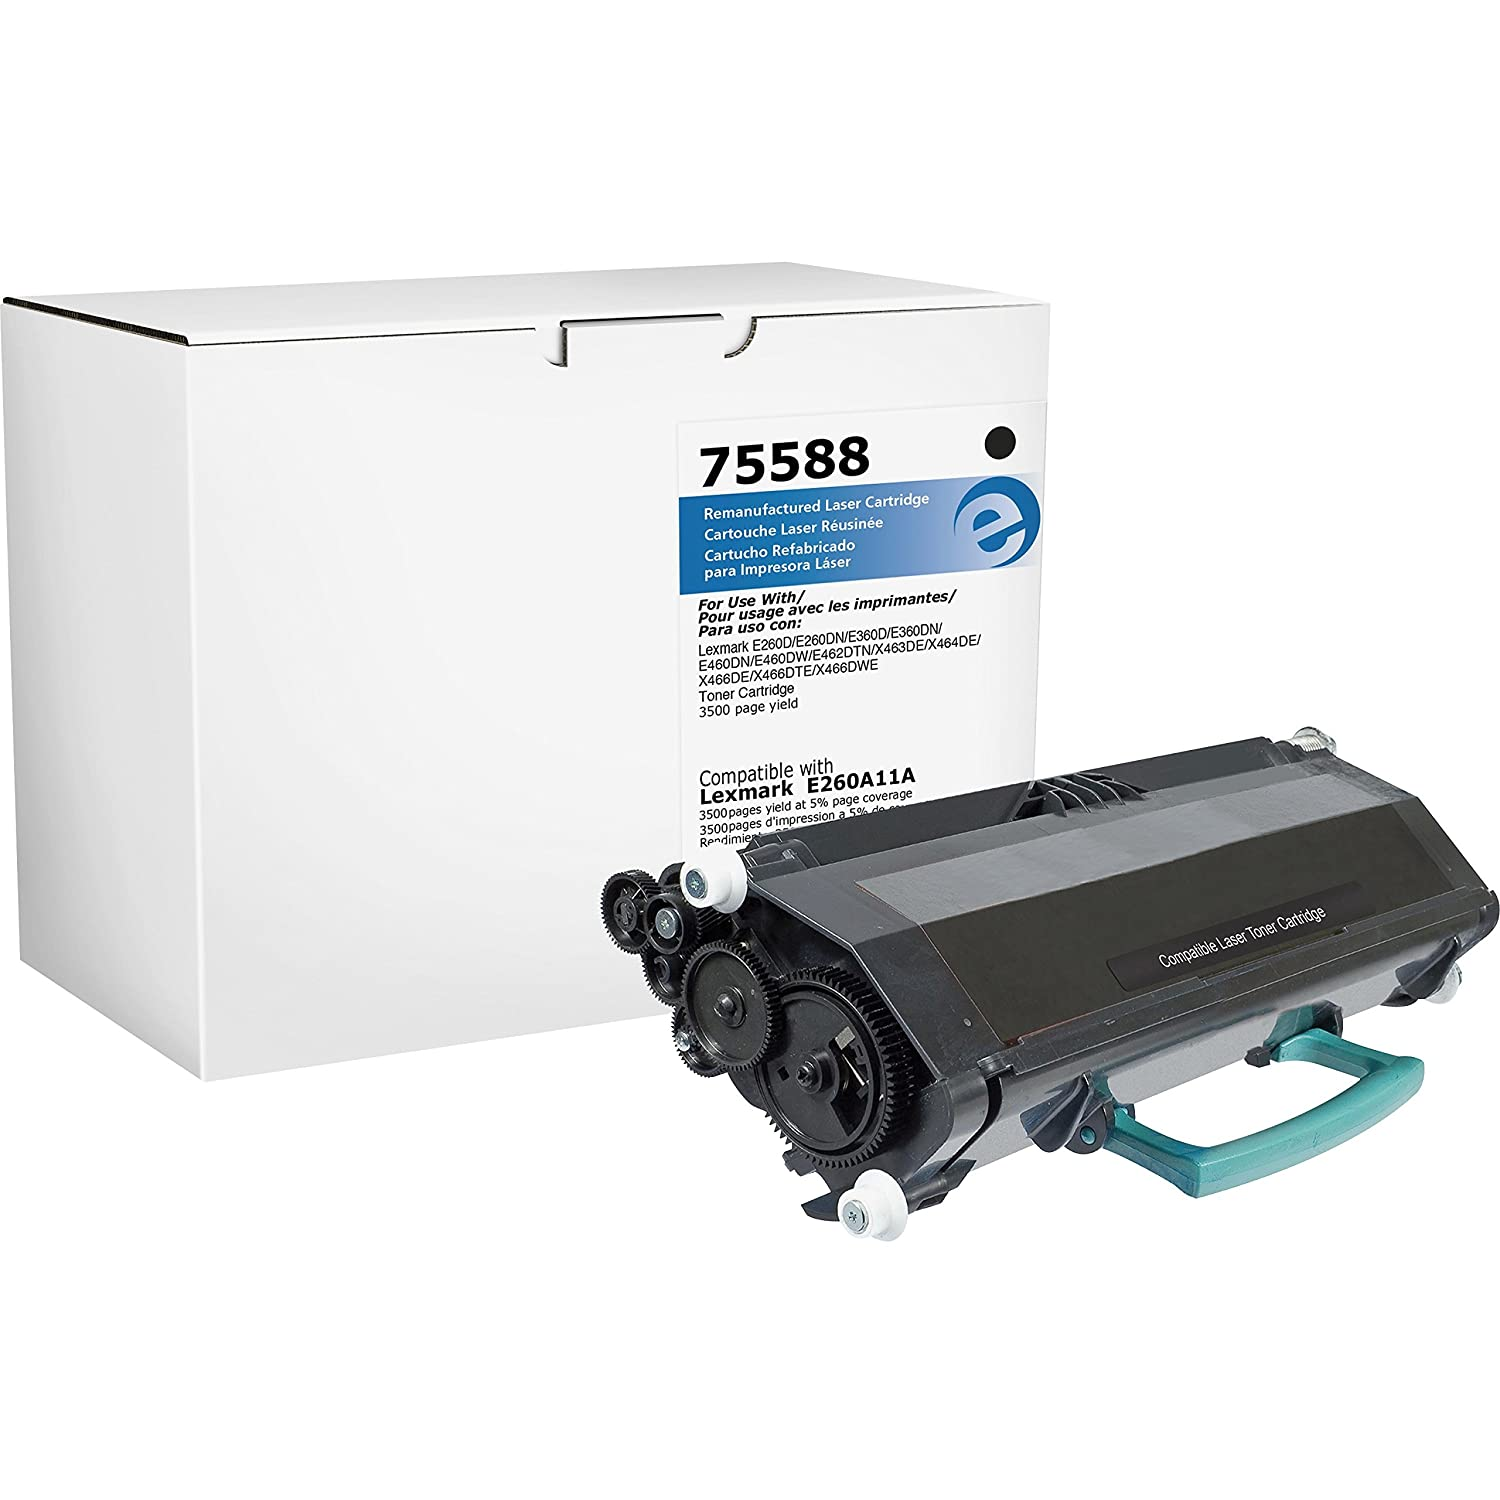 Amazon.com: Elite Image 75588 Remanufactured Toner Cartridge ...